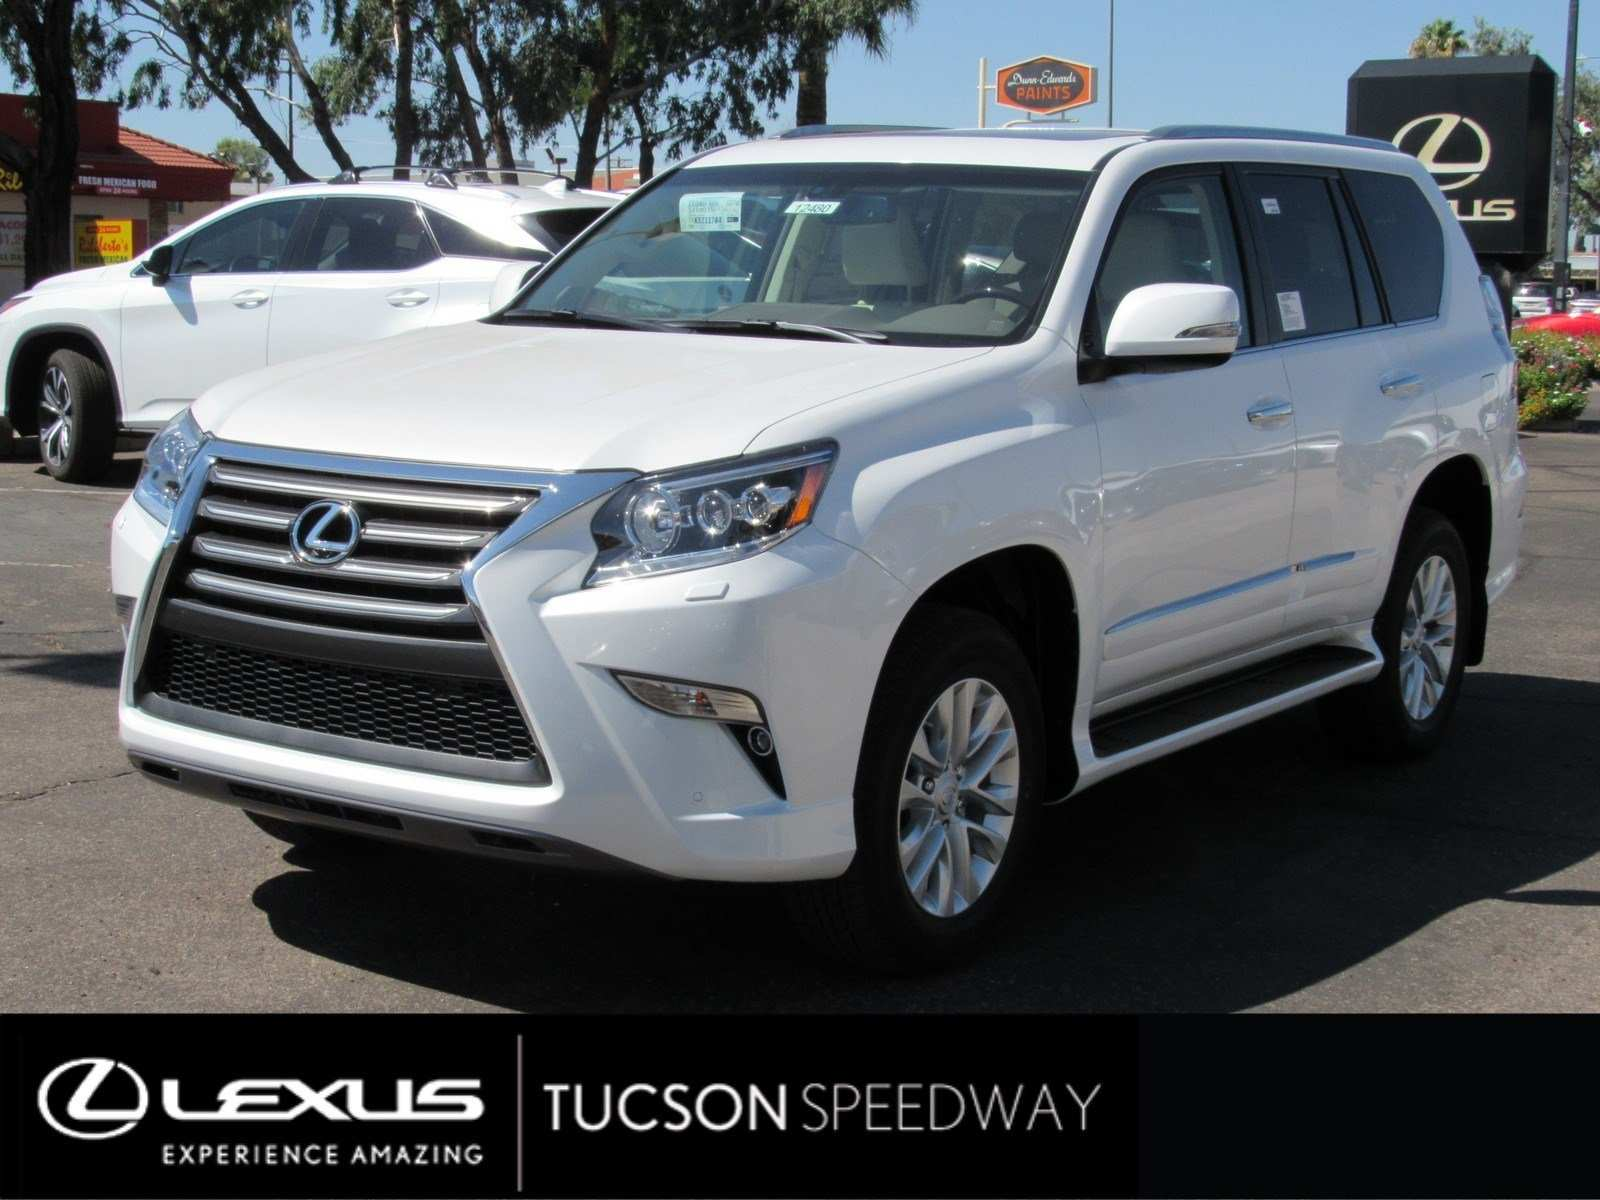 71 The Best 2019 Lexus GX 460 Pricing